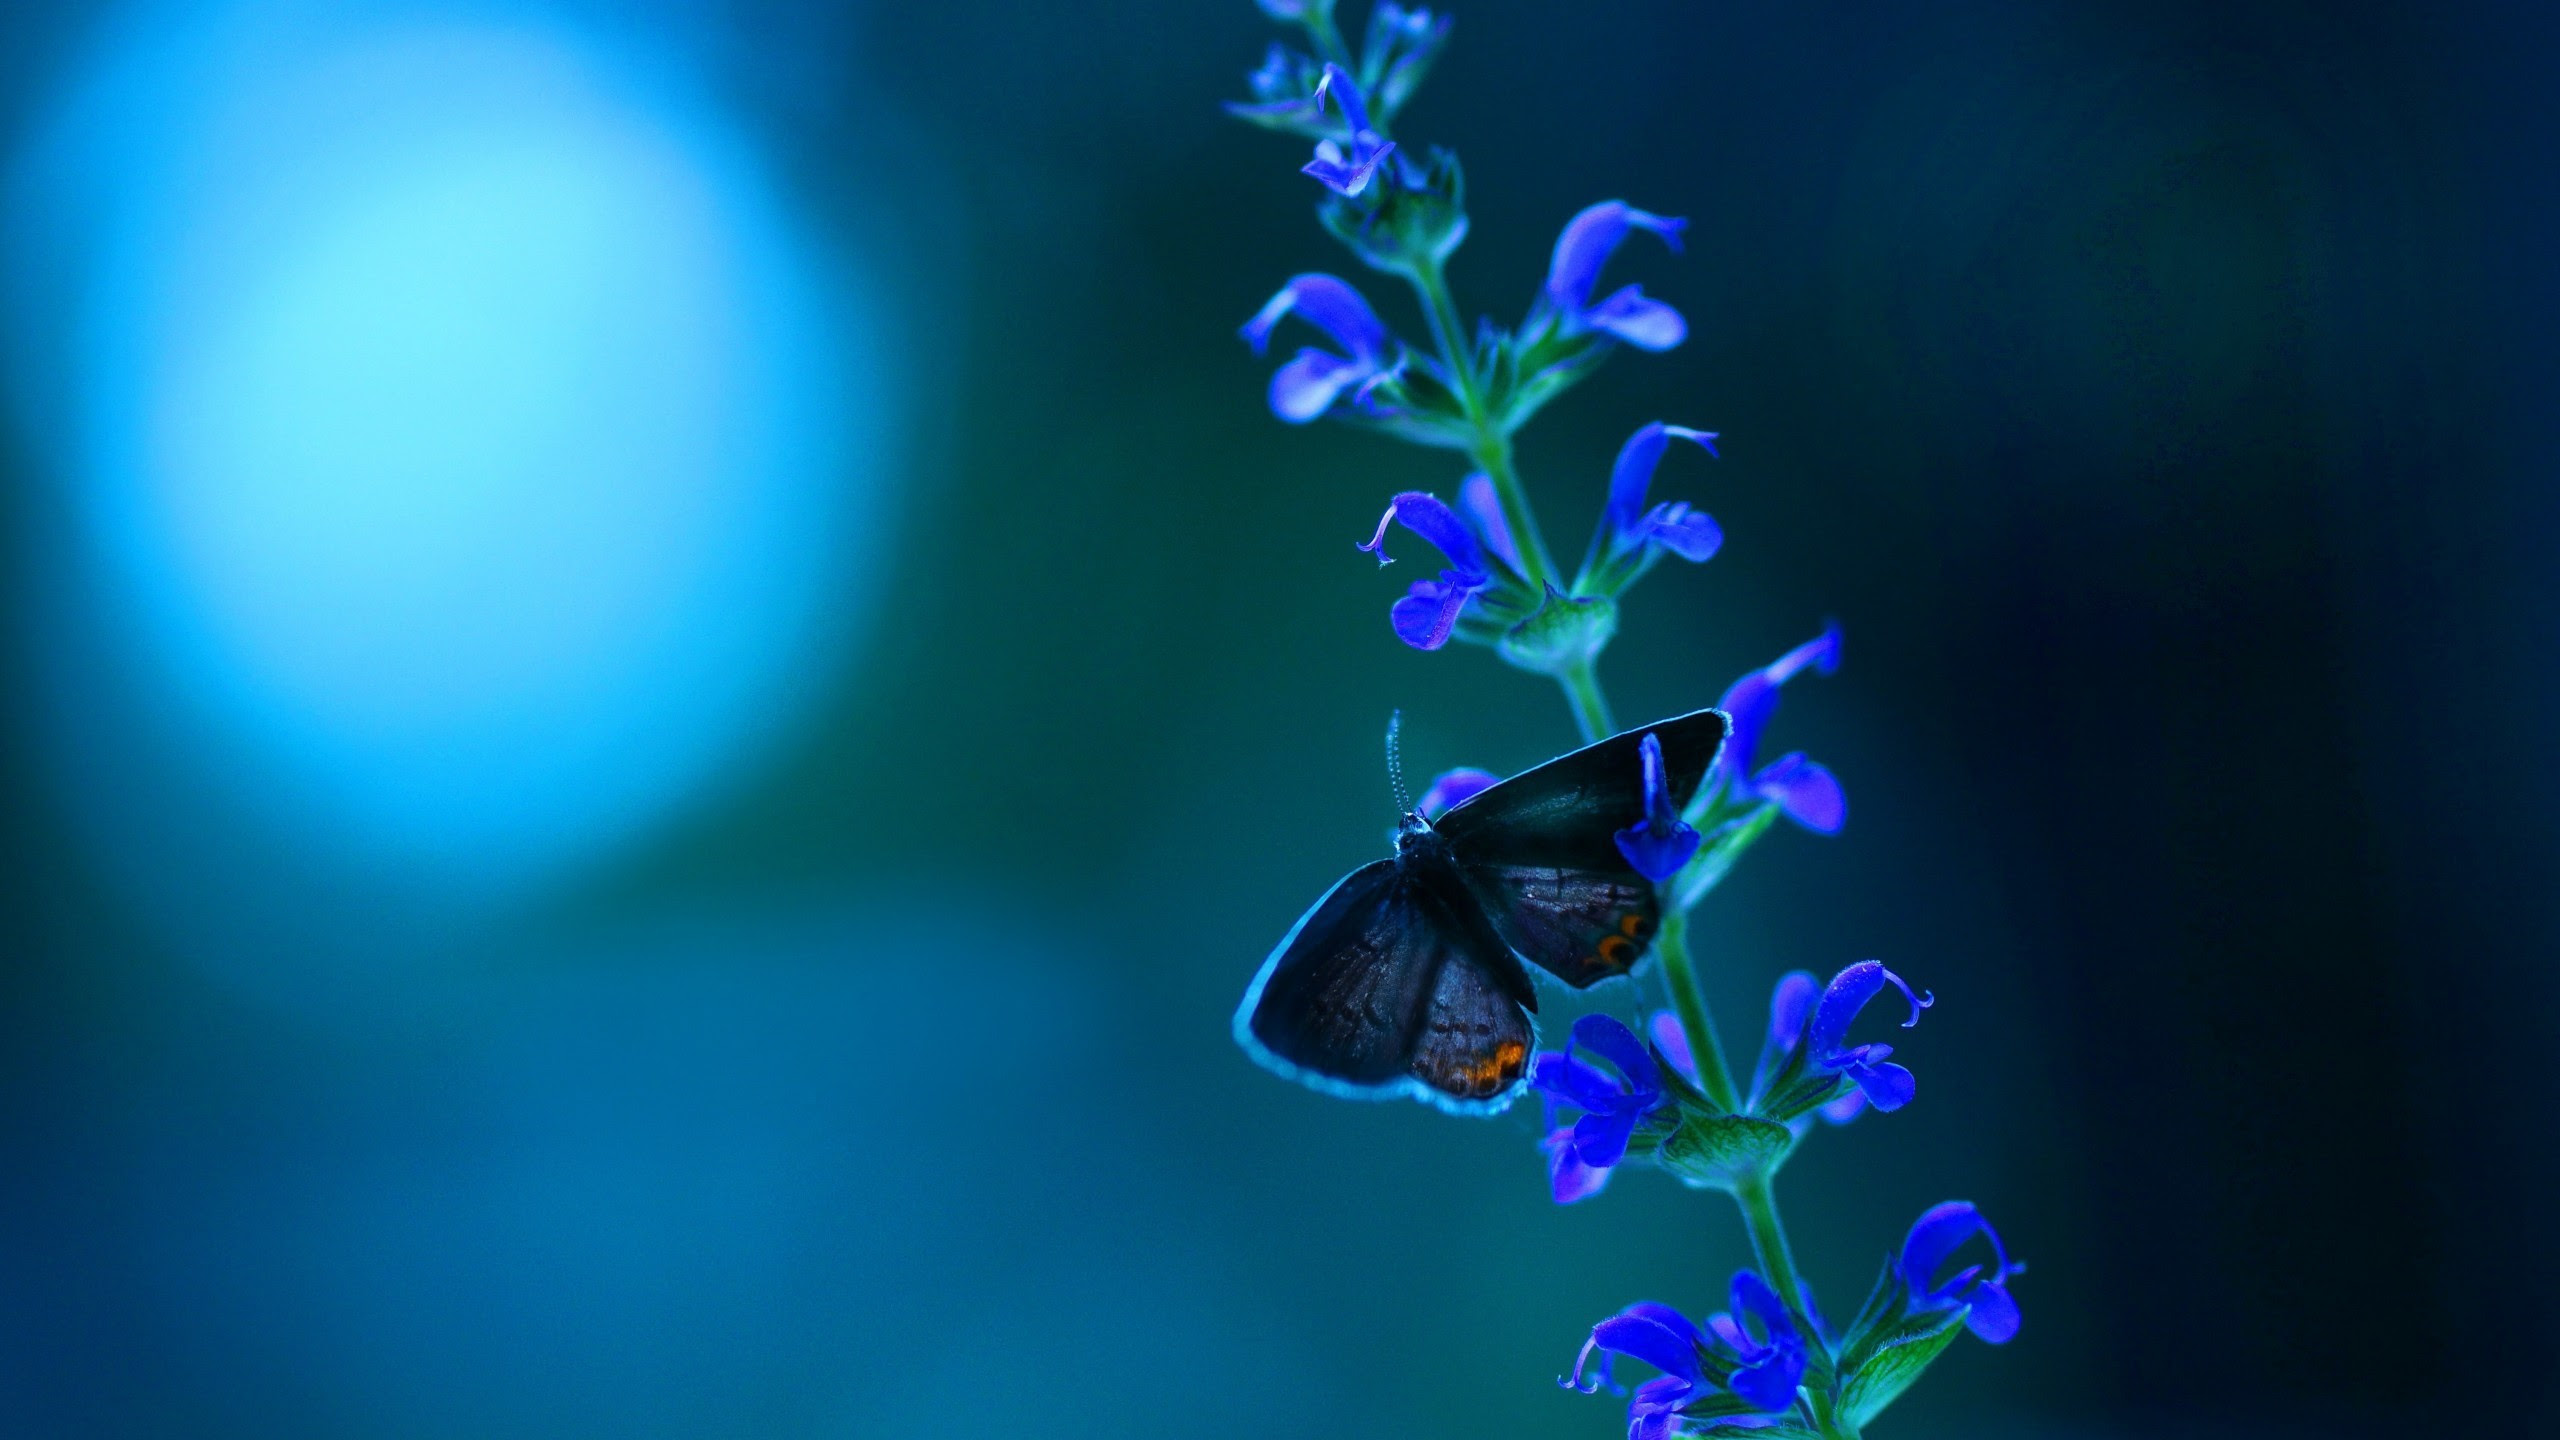 Little butterfly on blue flowers brush wallpapers and ...